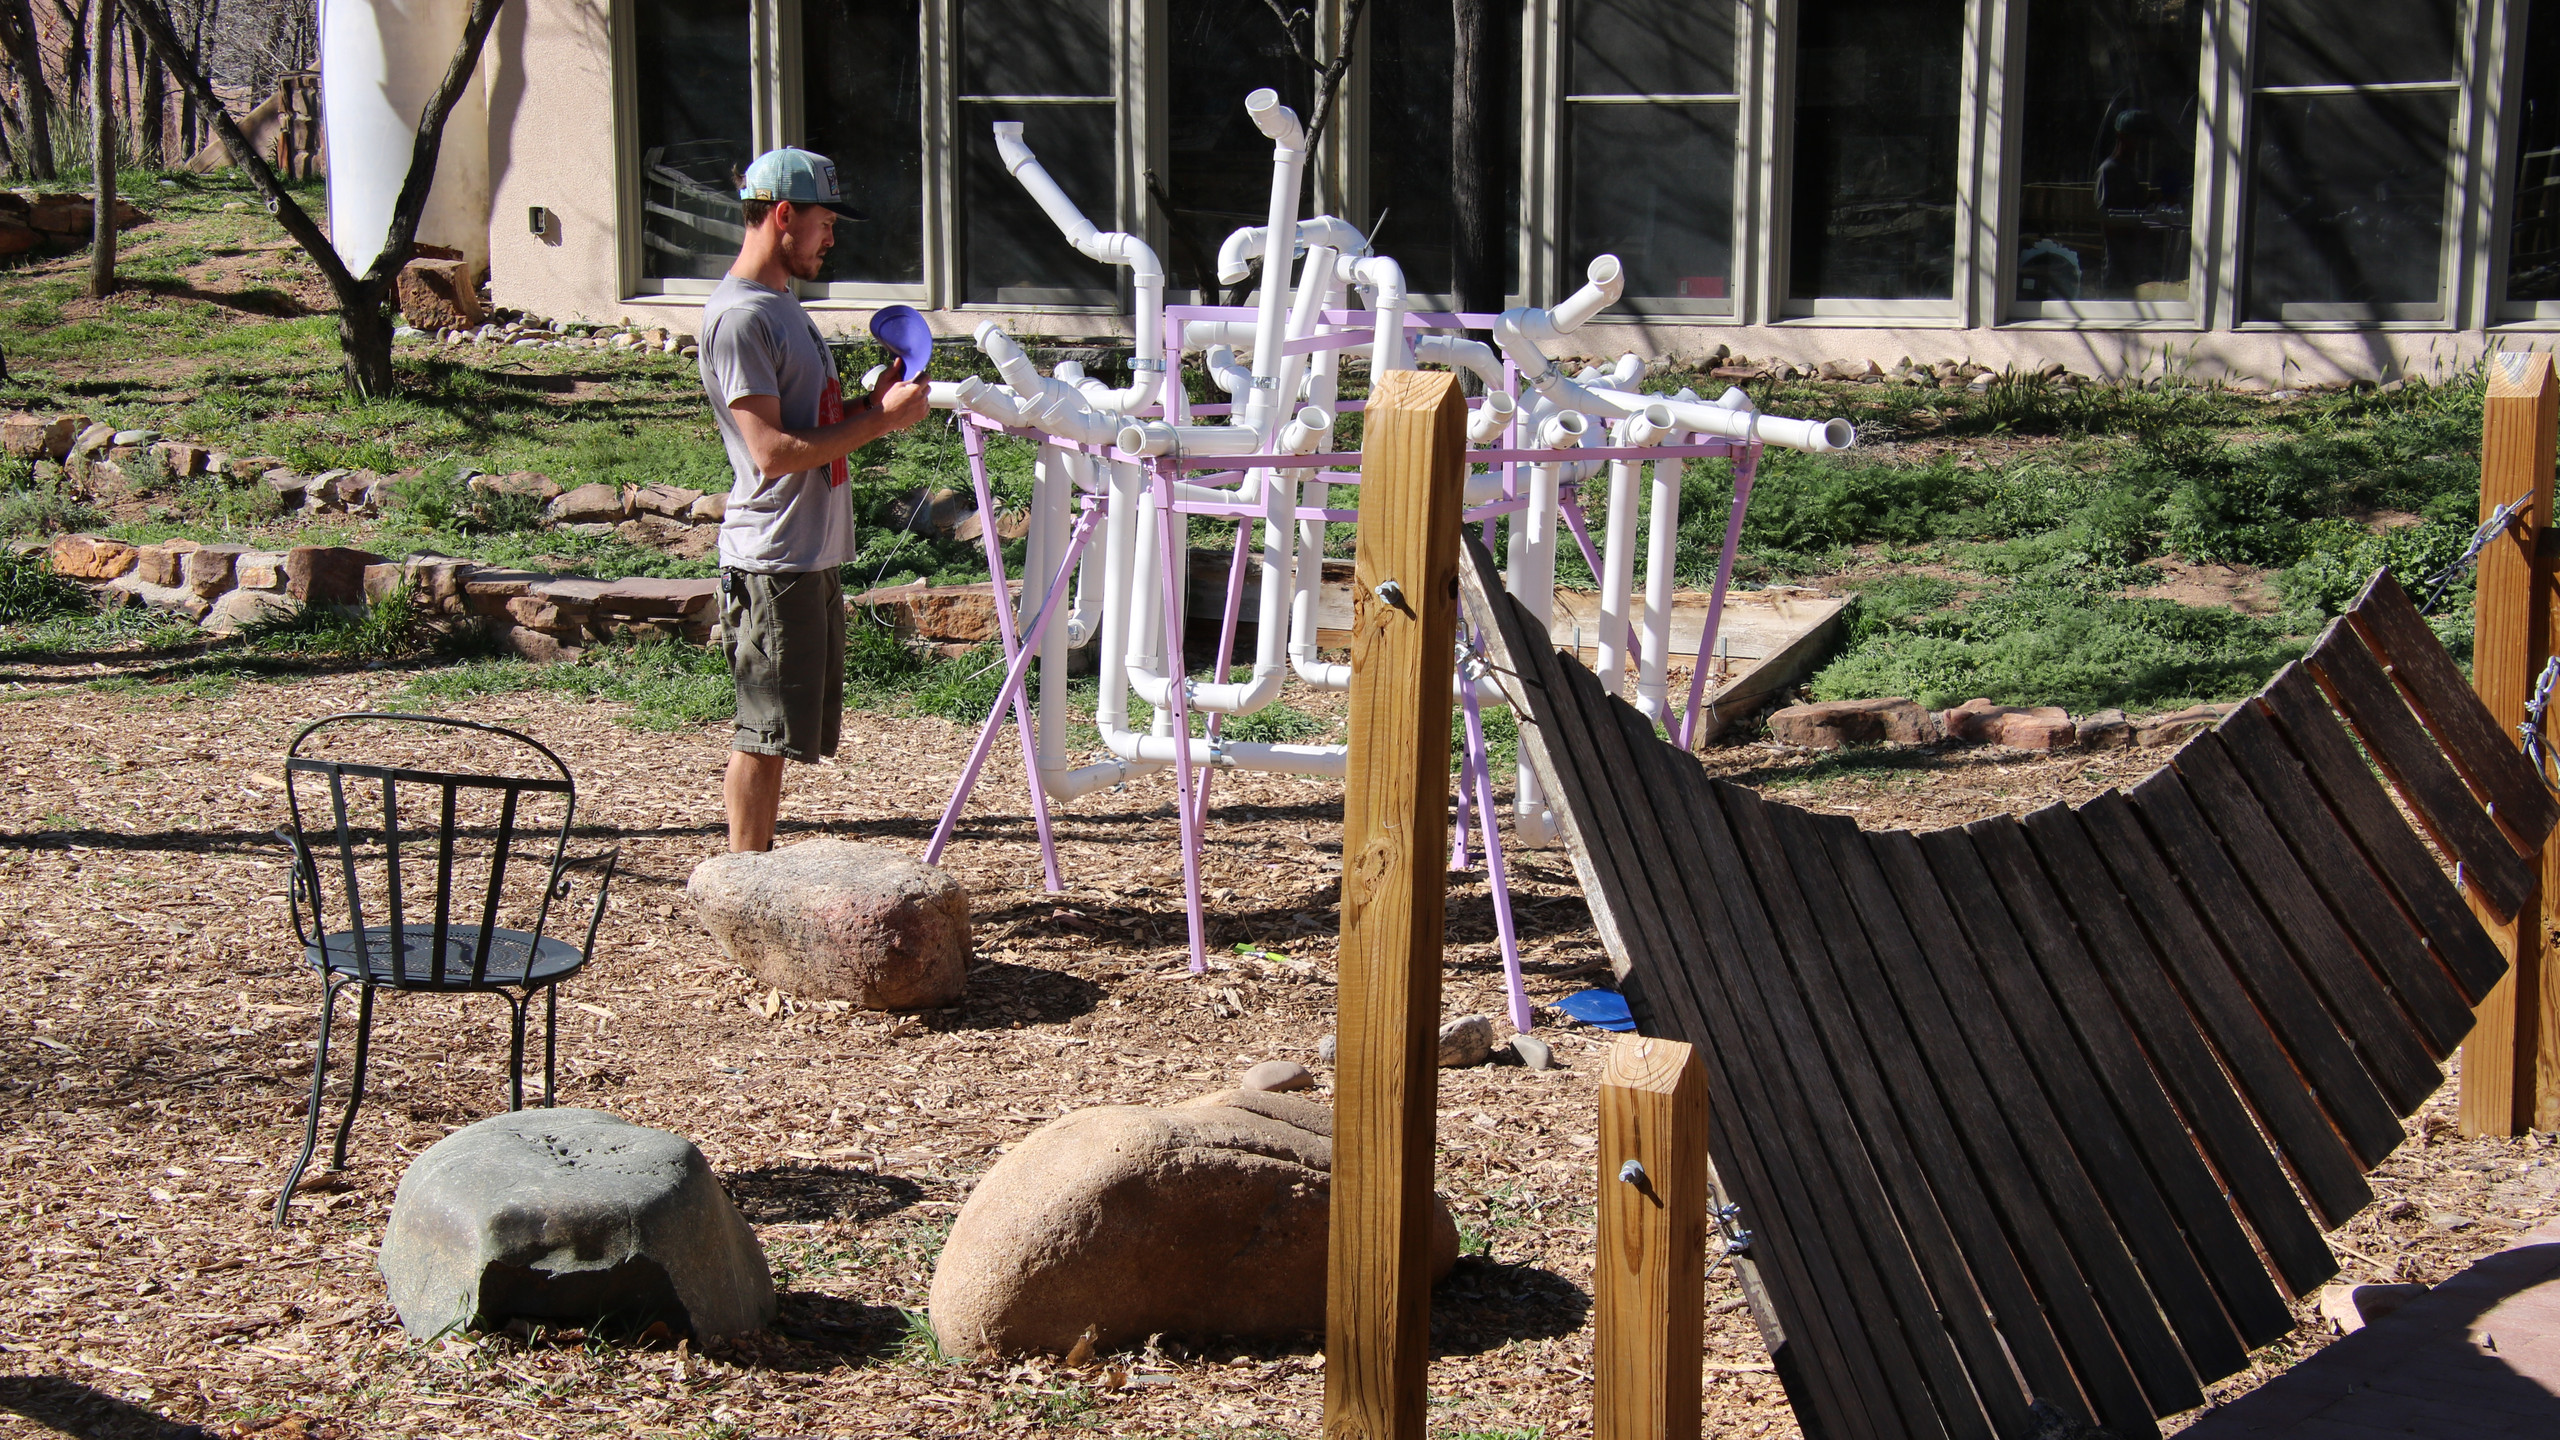 Outdoor music making area at the Santa Fe Children's Museum